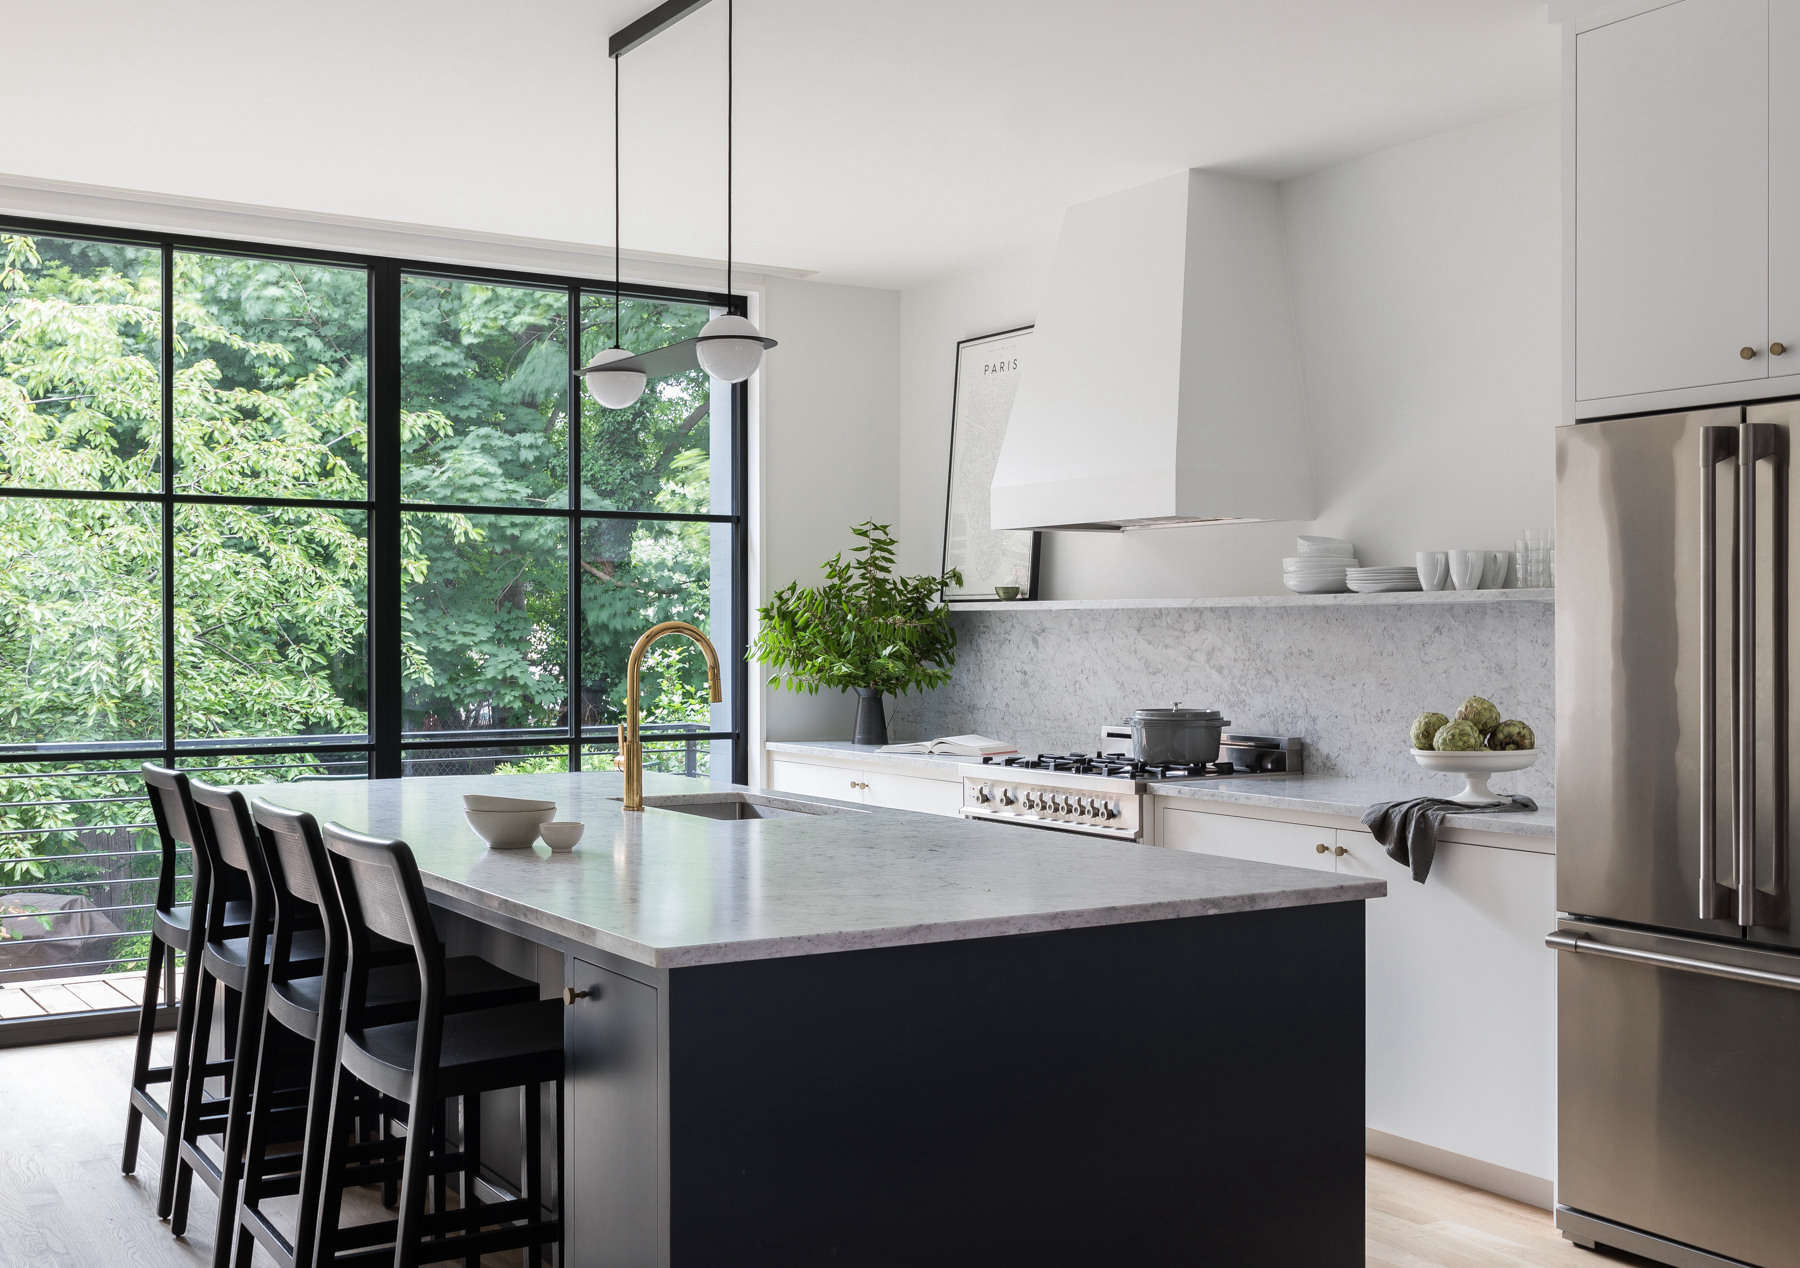 before & after: a circa-1850s row house in jersey city gets a fresh